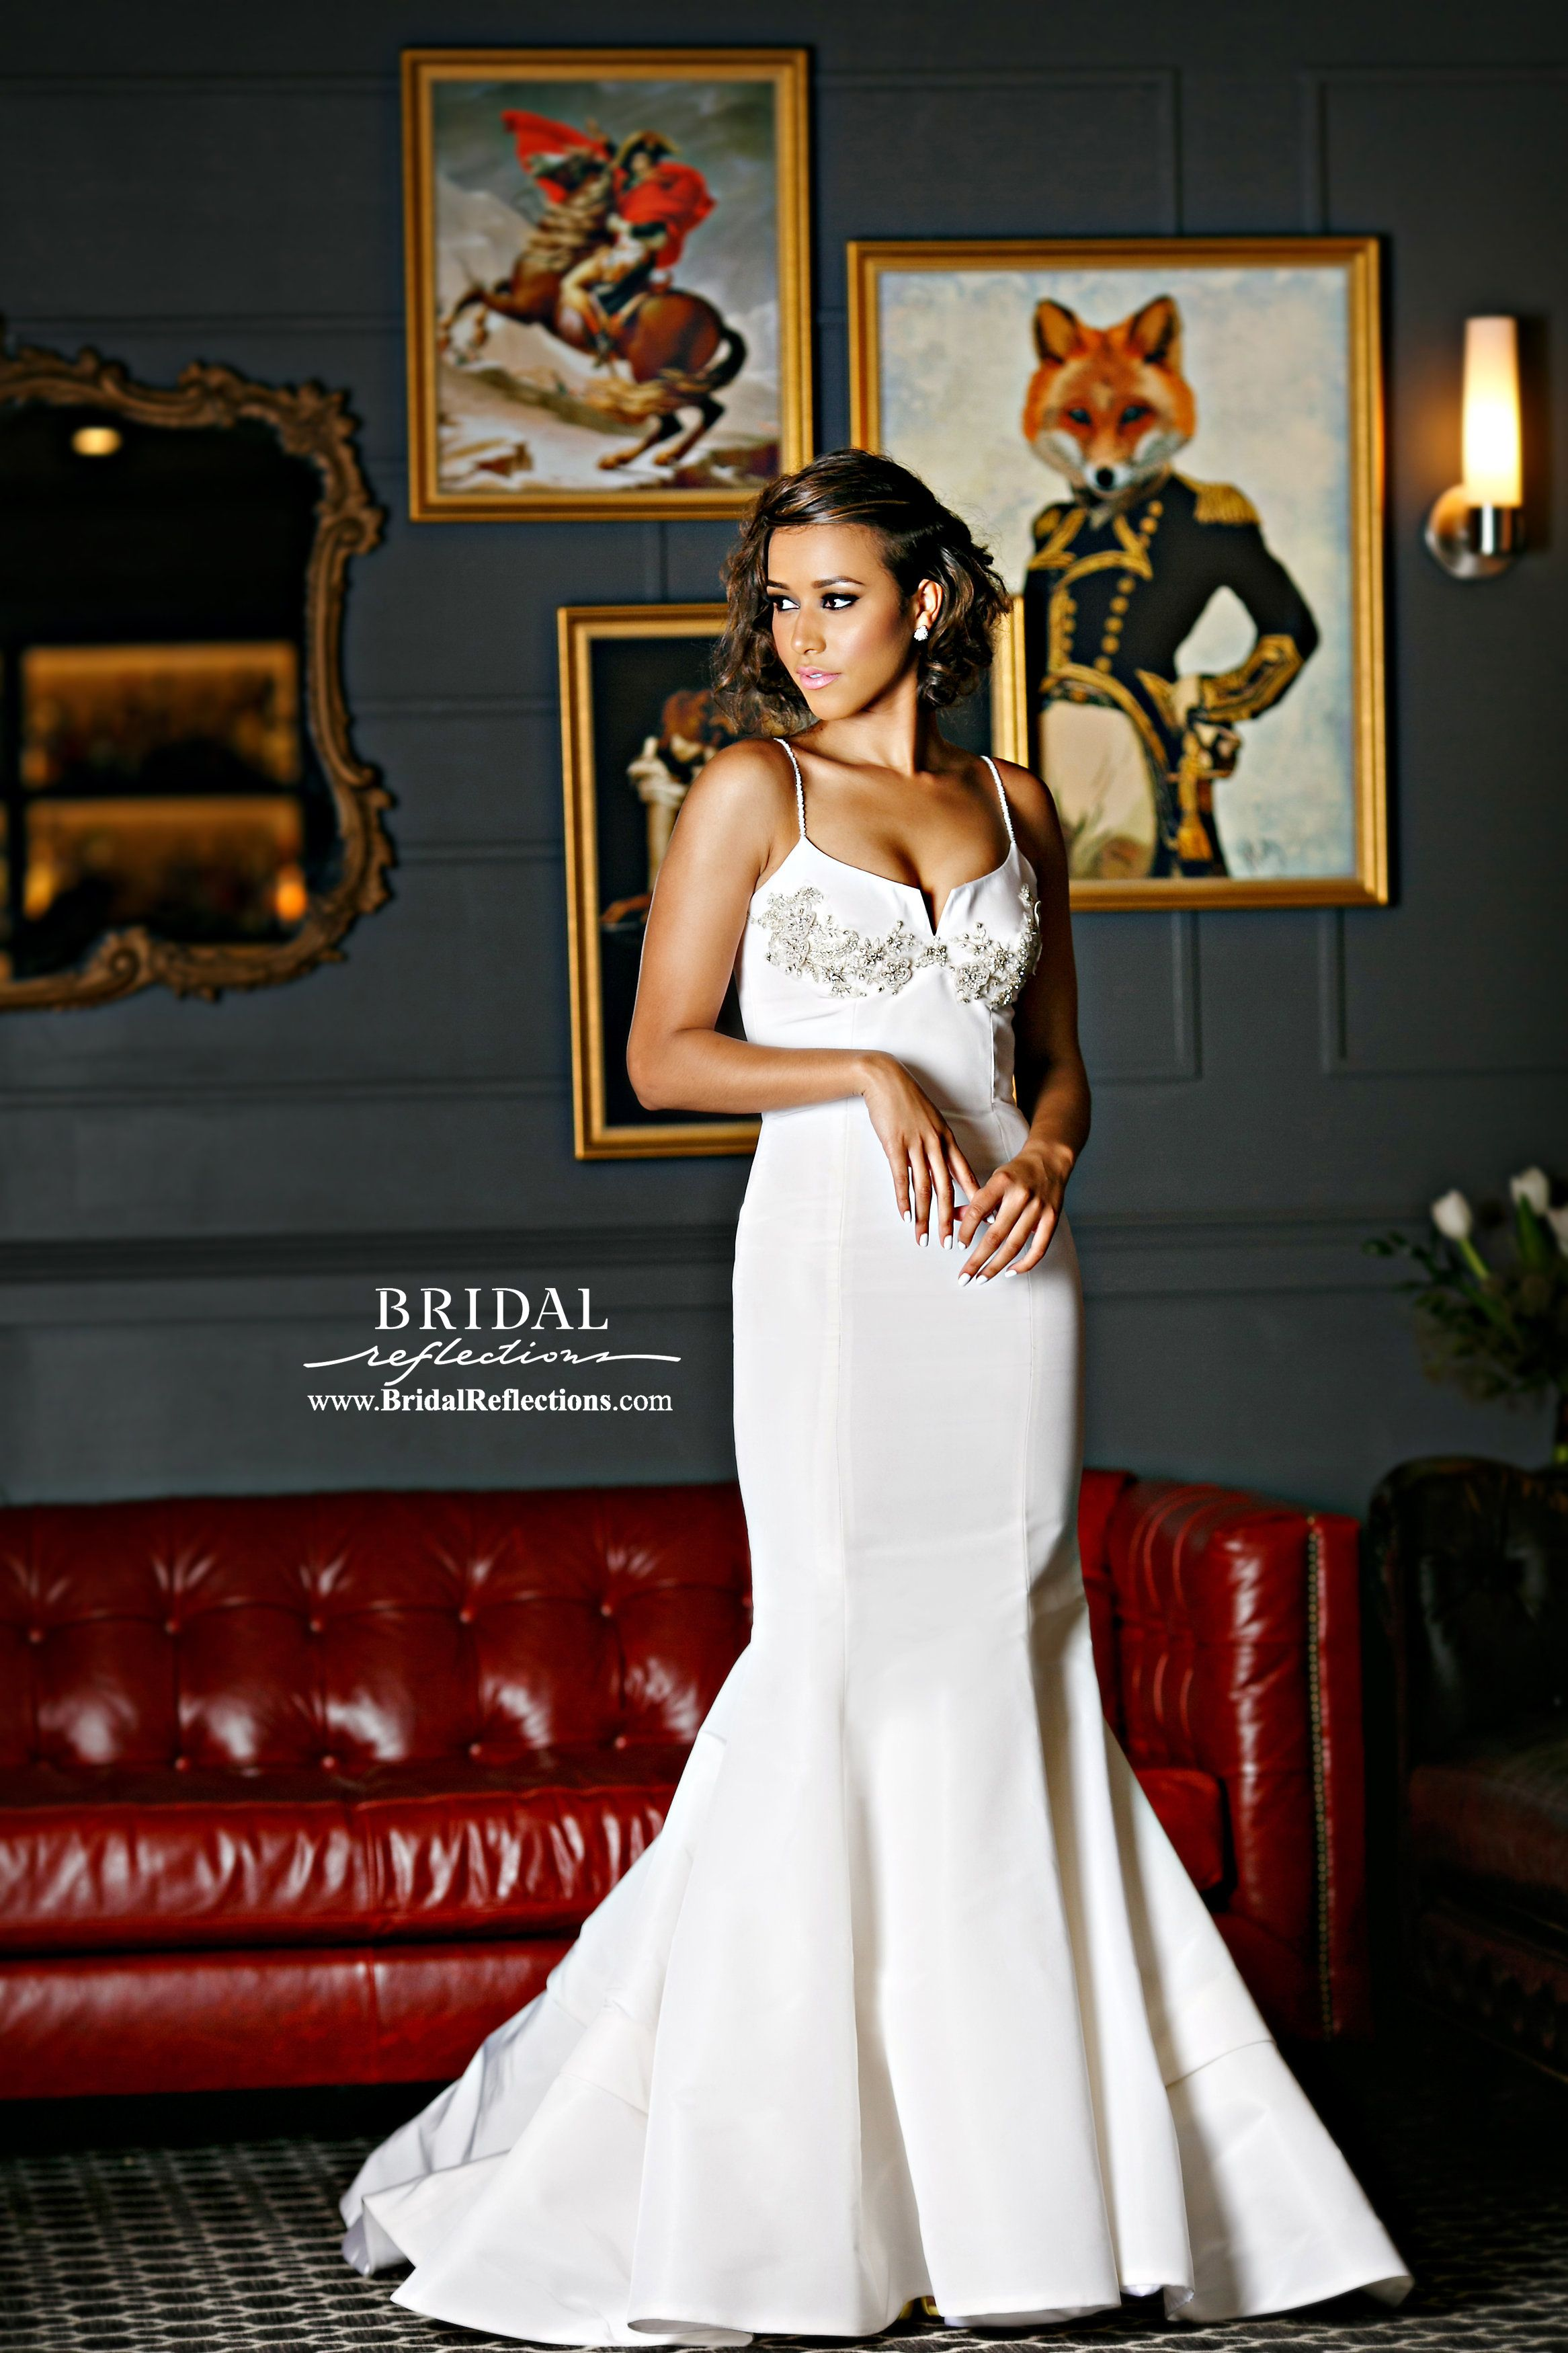 Dreaming about wearing a wedding dress  Haute couture custommade bridal u formal wear Your dreams our